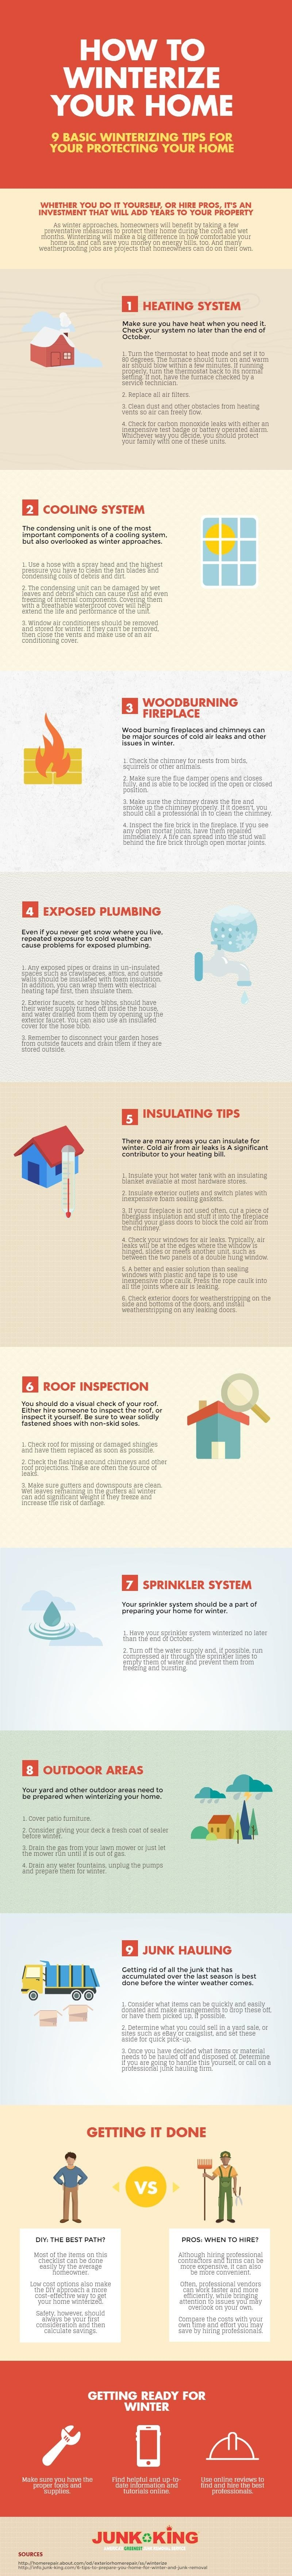 junk-hauling-and-winterizing-your-home-infographic